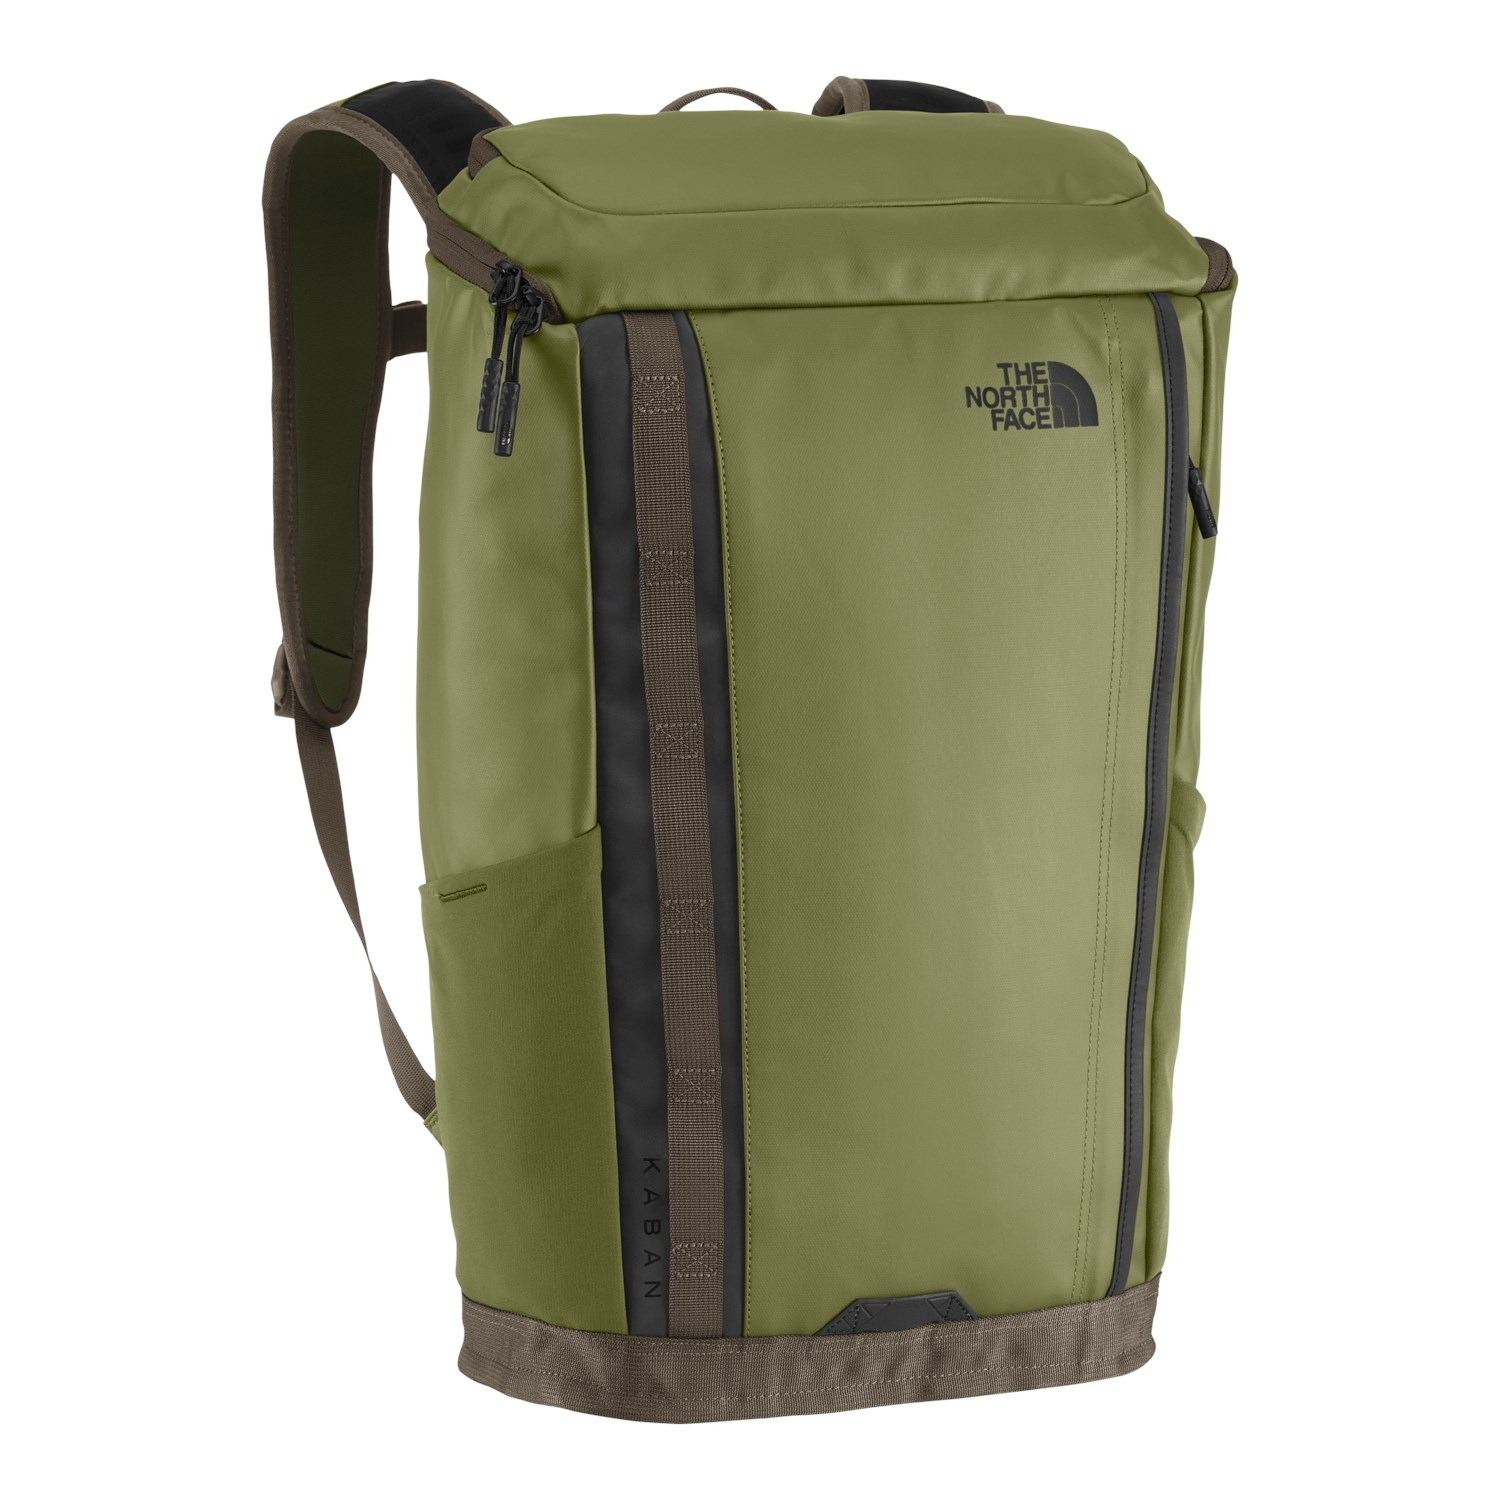 79102e87c North Face Kaban Backpack Amazon - CEAGESP